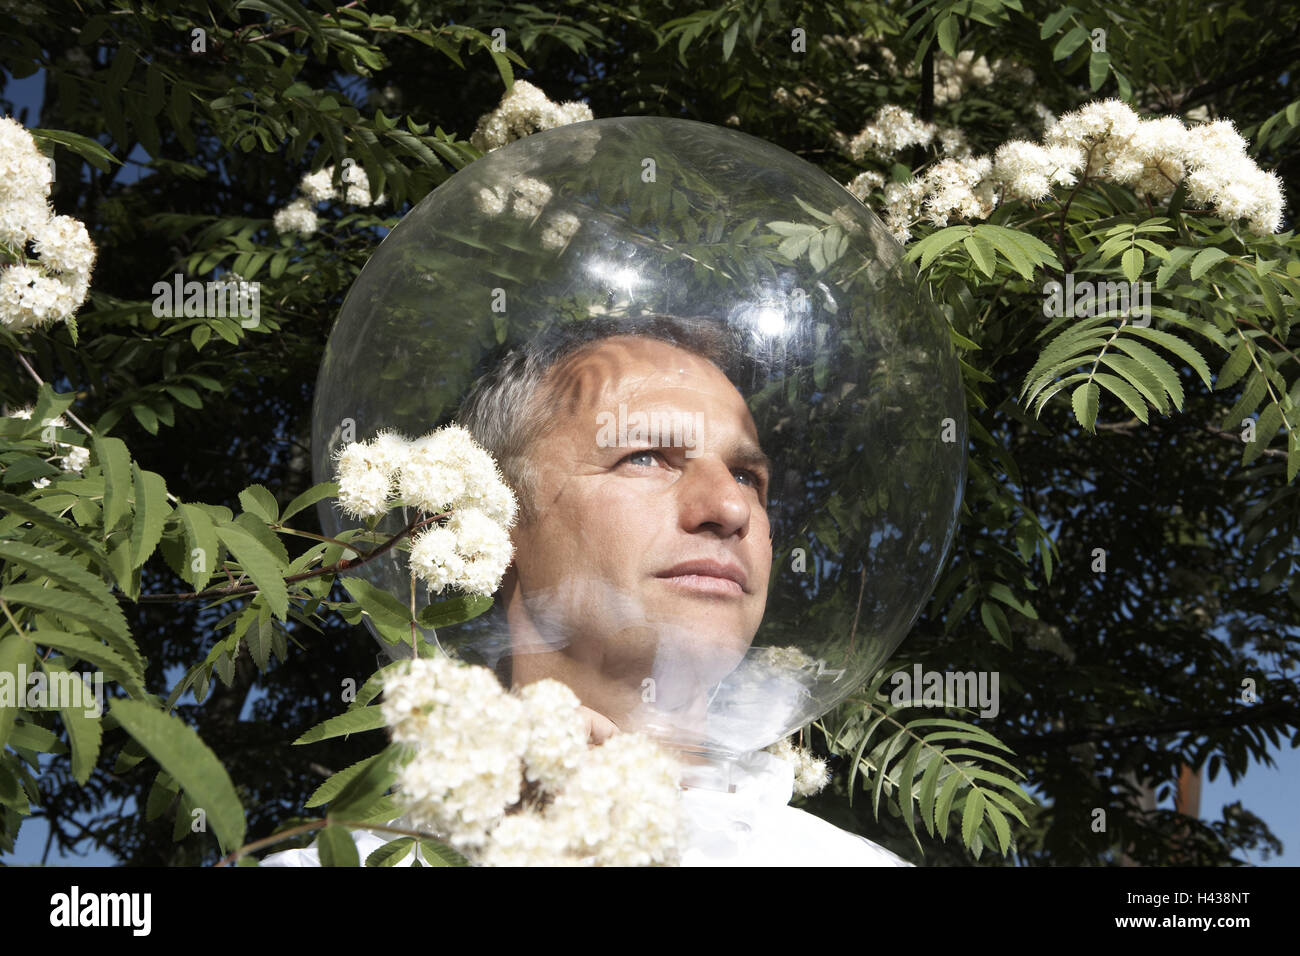 Garden, shrub, blossoms, man, head, glass ball, icon, allergy, protection, isolation, model released, people, defence, - Stock Image